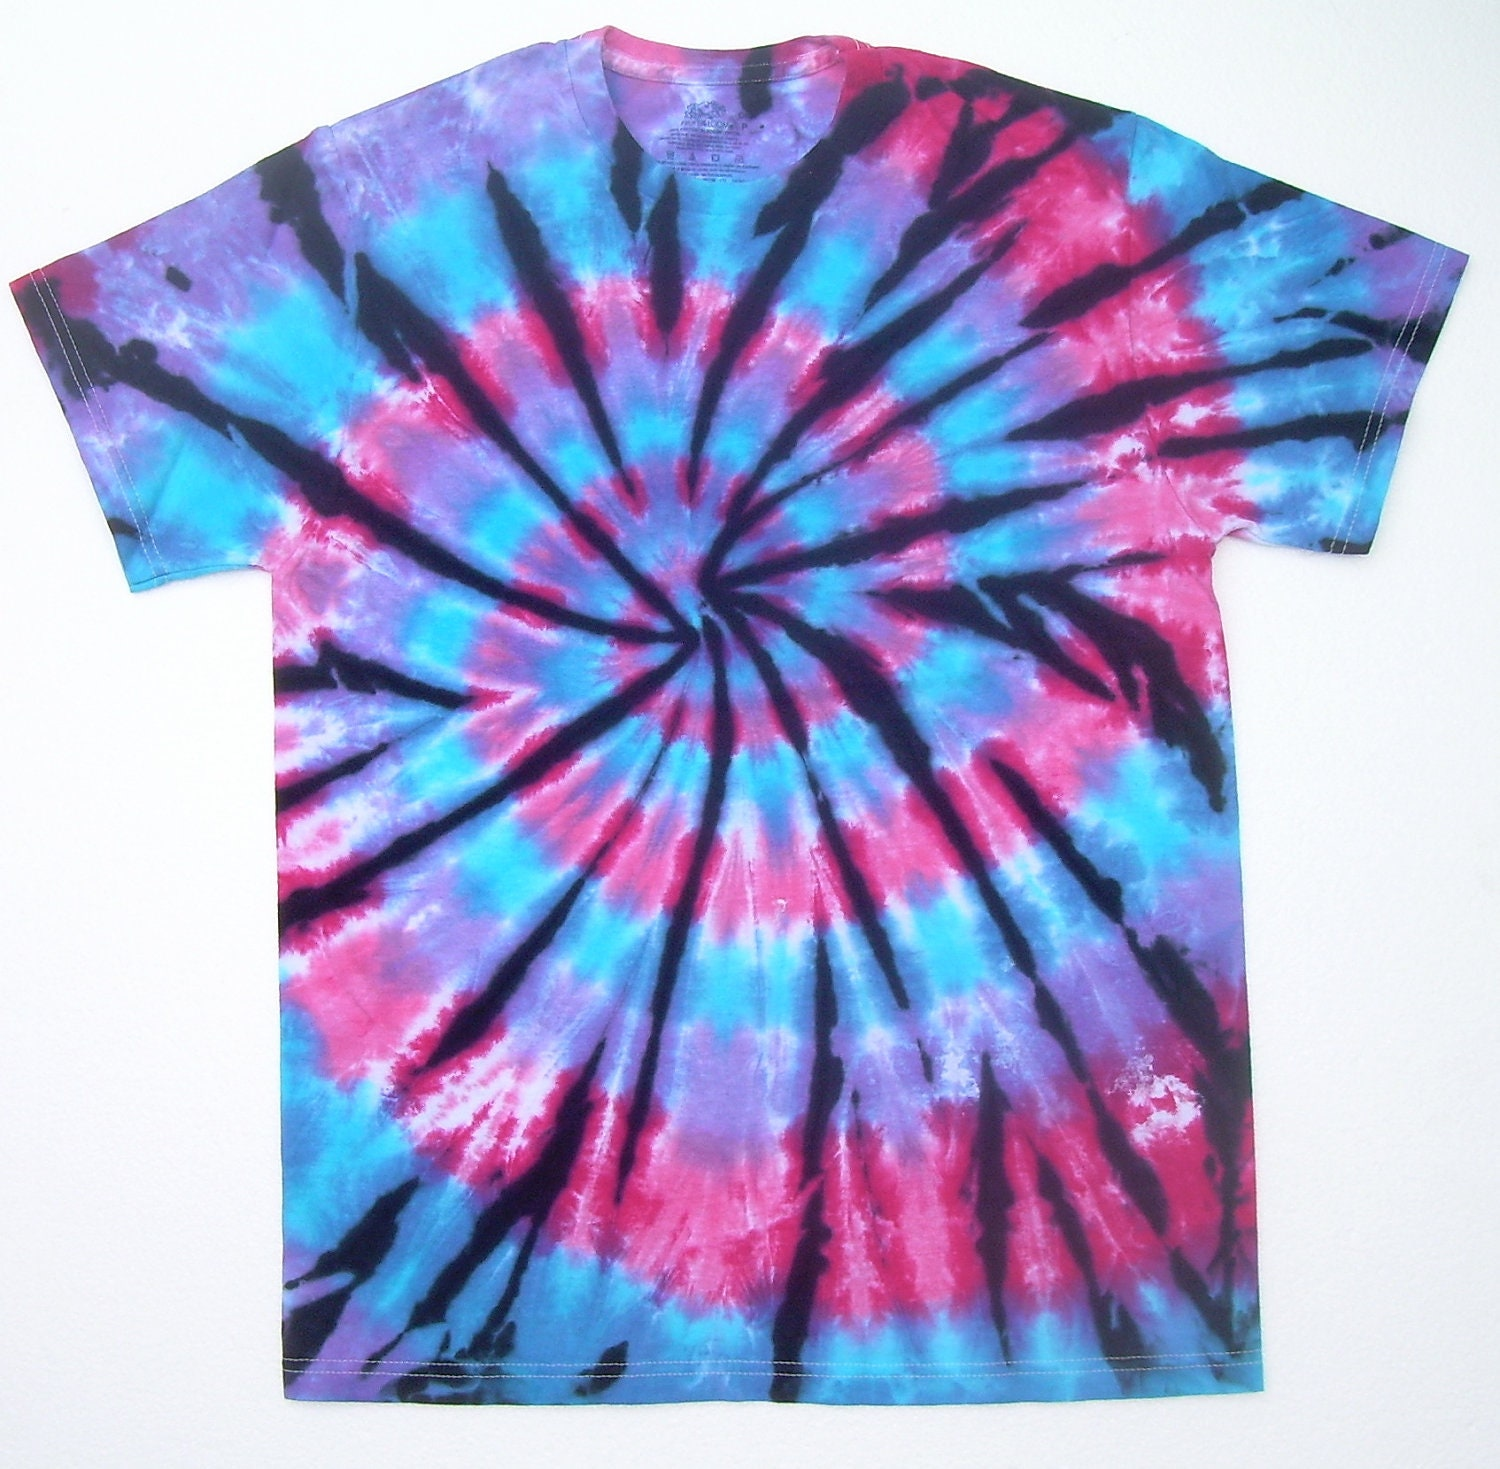 On sale adult small tie dye shirt pink purple blue spiral for Black and blue tie dye t shirts